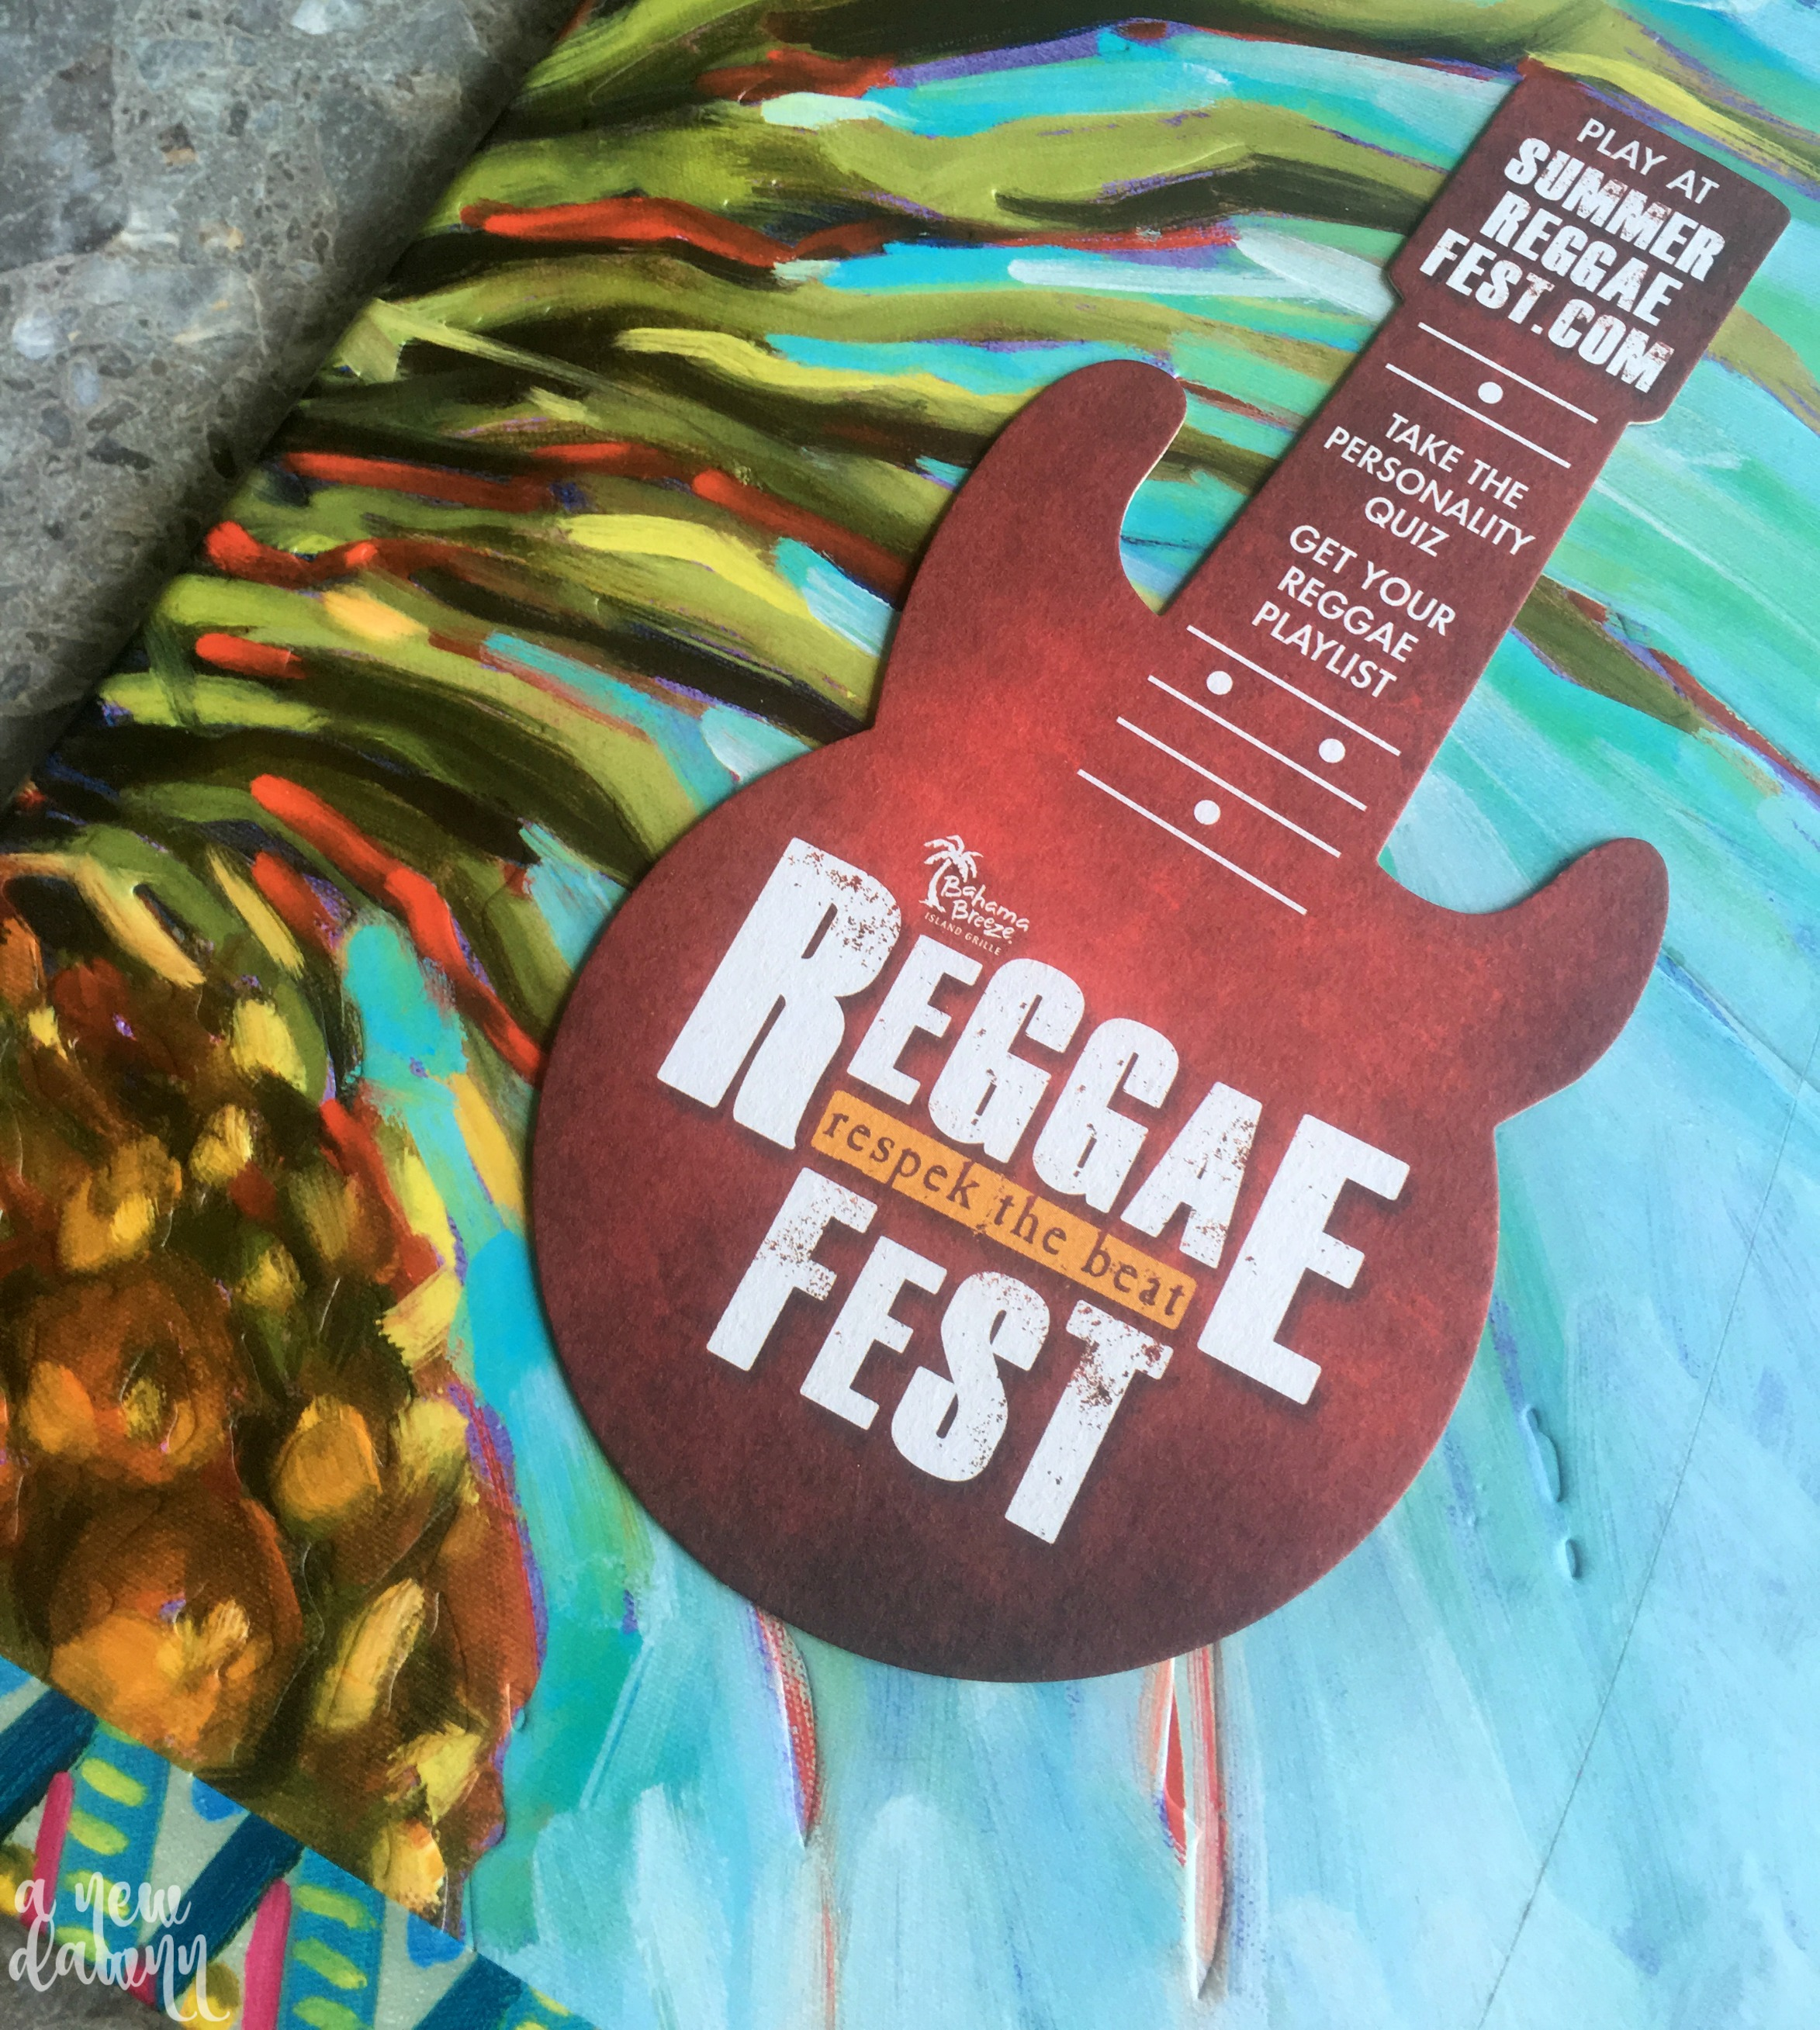 Bahama Breeze Reggae Fest